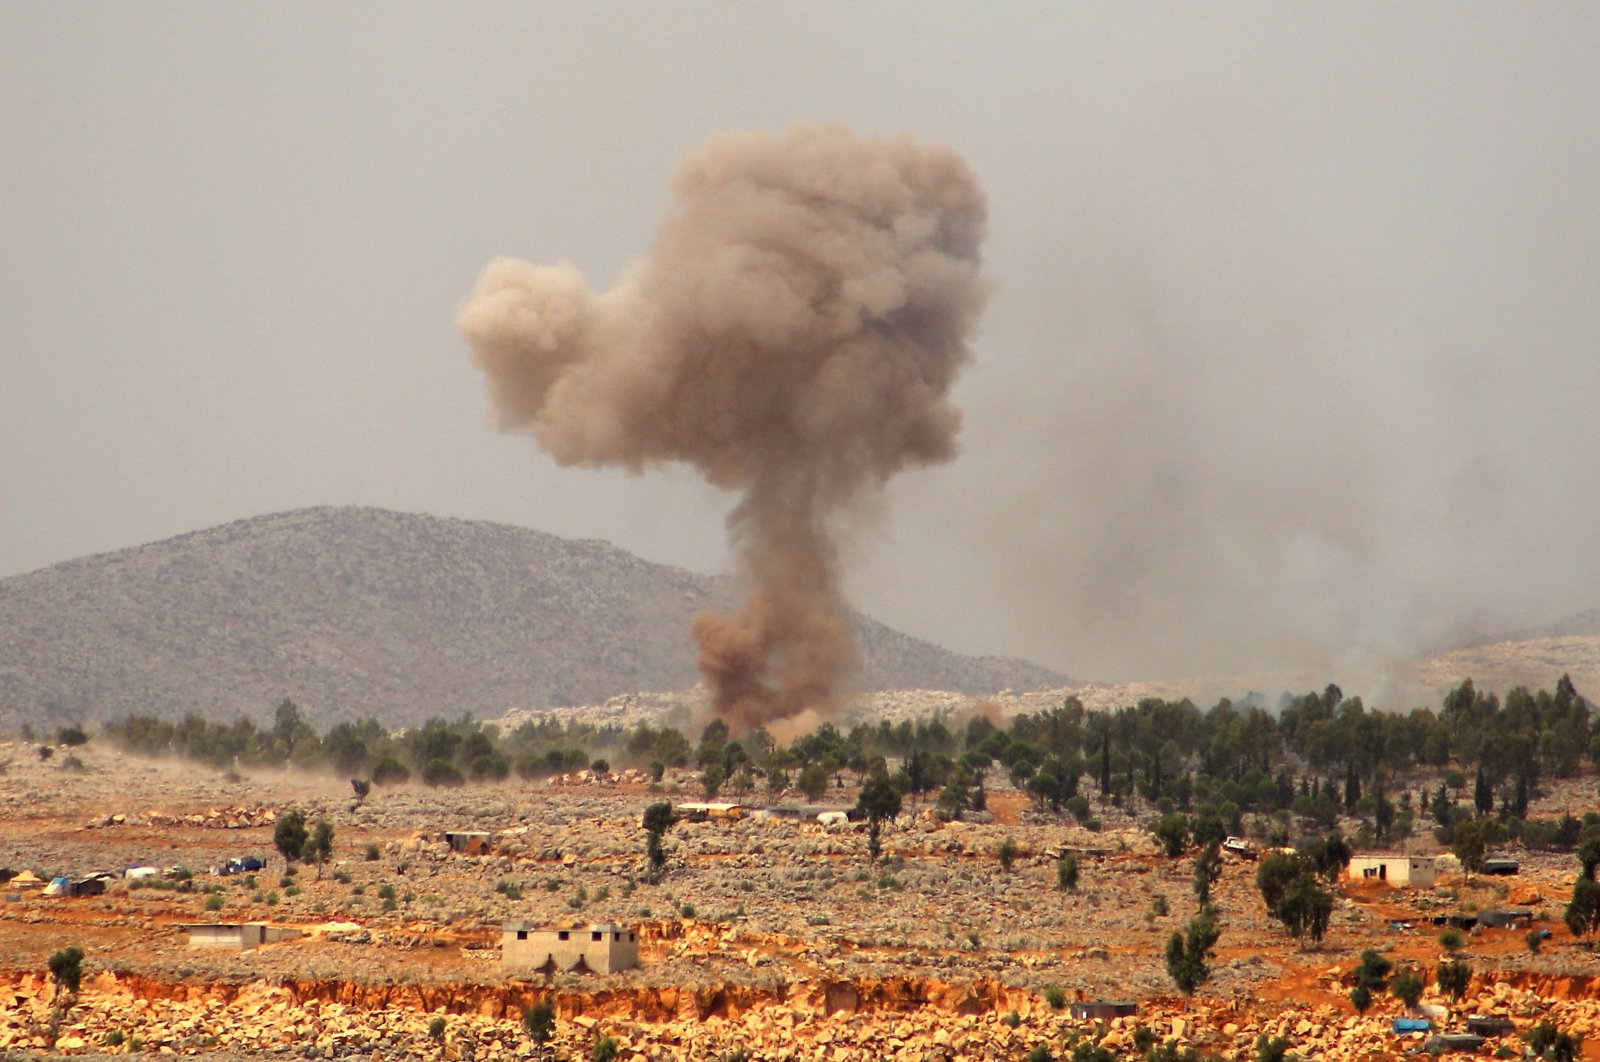 Smoke billows from a reported Russian airstrike near the village of Hafsarjah, in the western countryside of Idlib province in northwestern Syria, Sept. 11, 2020. (AFP Photo)